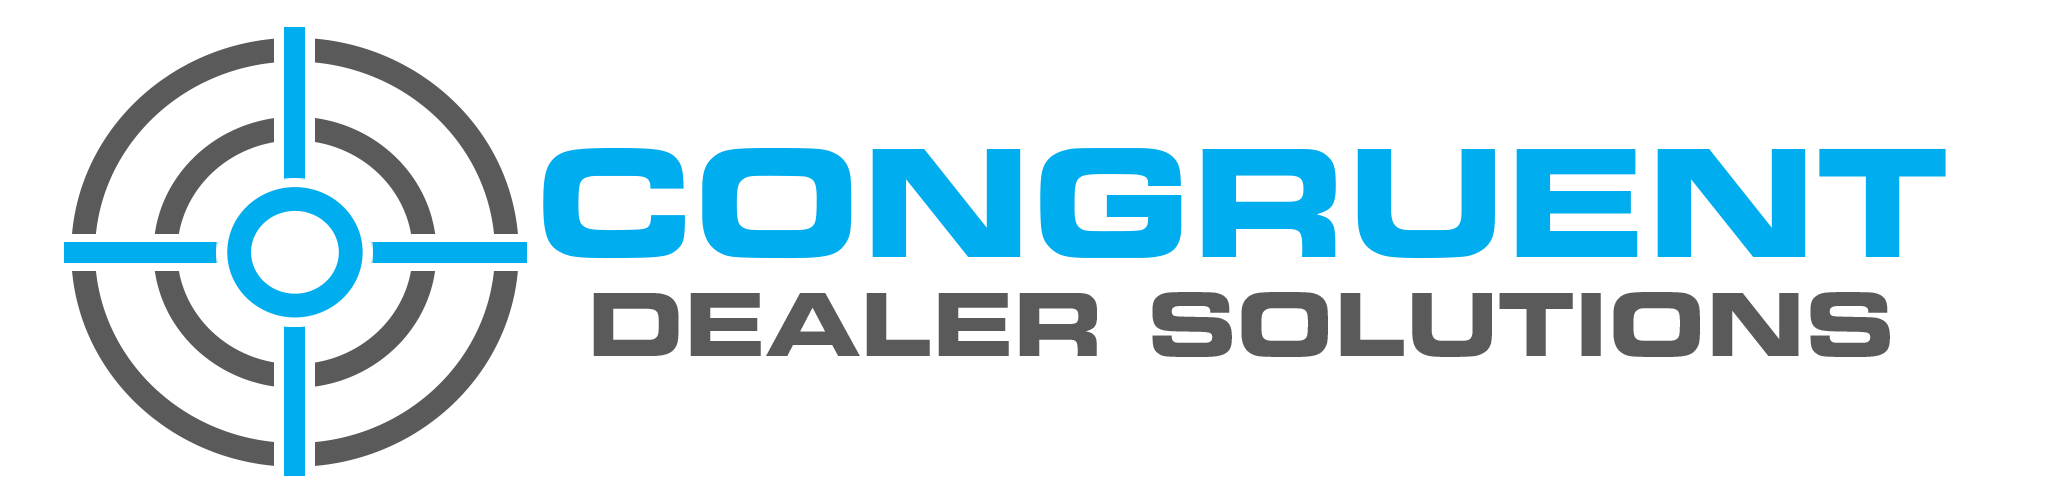 Congruent Dealer Solutions